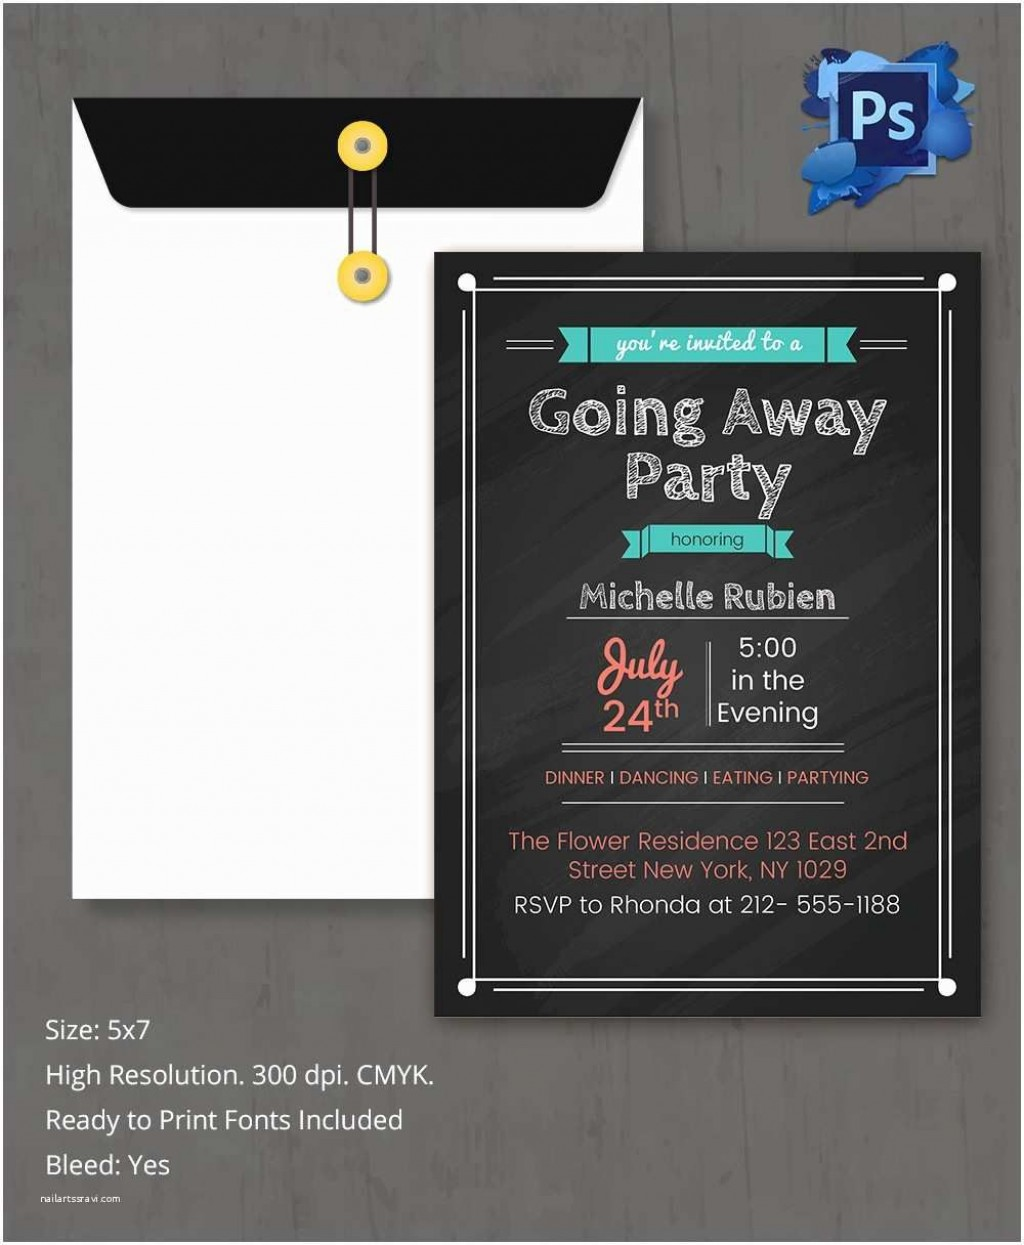 009 Simple Going Away Party Invitation Template Idea  Free PrintableLarge